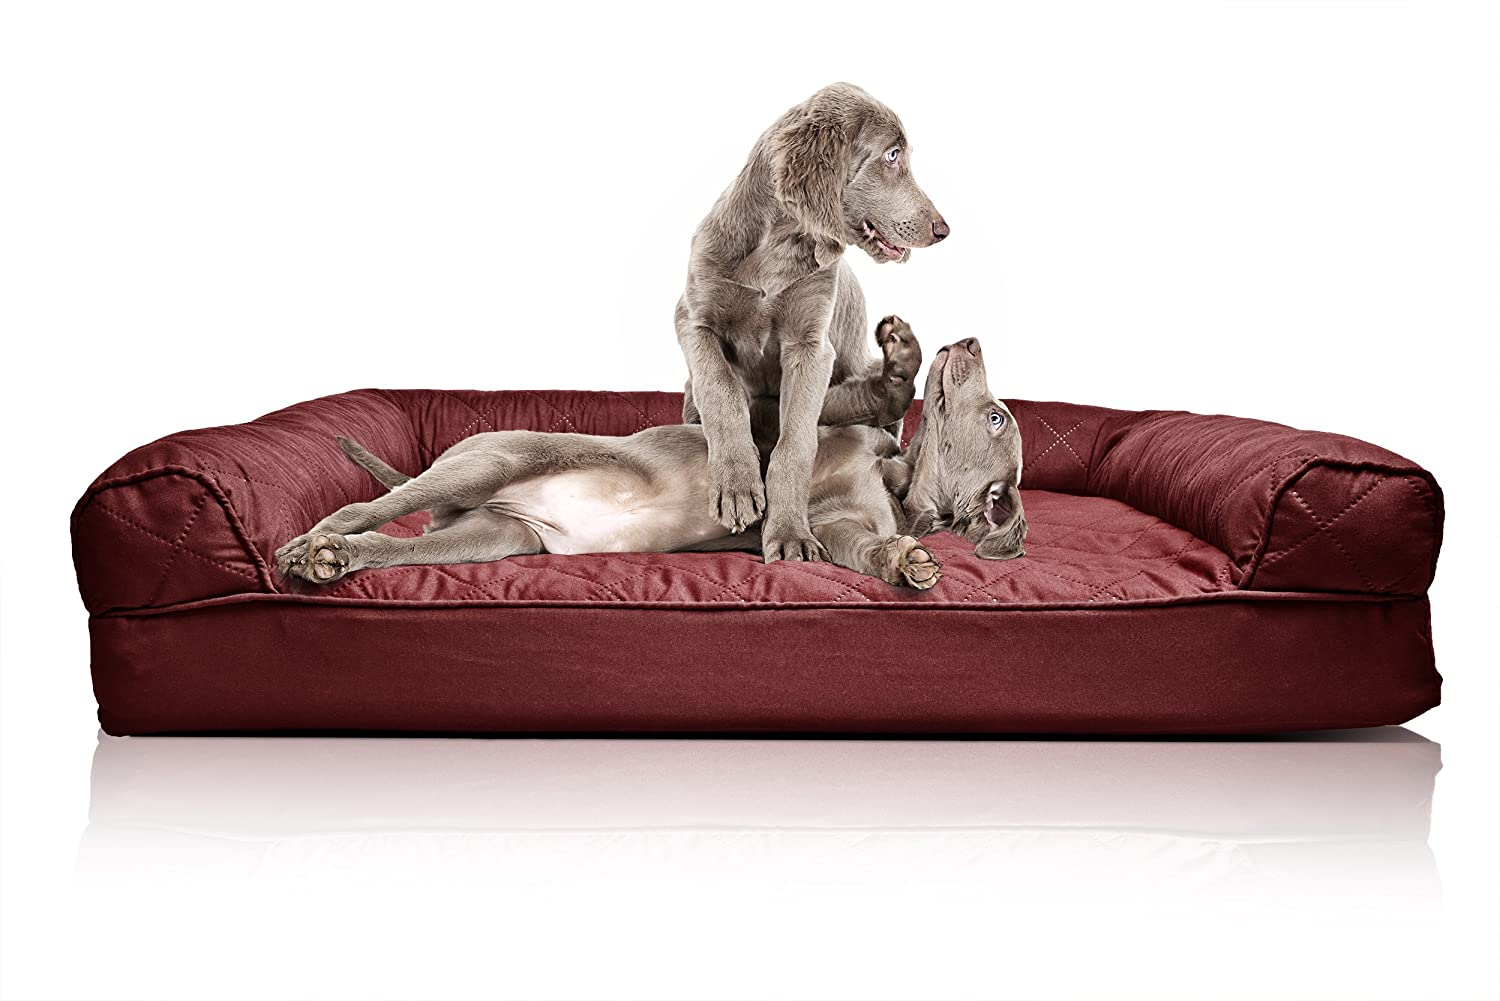 Amazon.com : FurHaven Jumbo Quilted Orthopedic Sofa Pet Bed For Dogs And  Cats, Wine Red : Pet Supplies